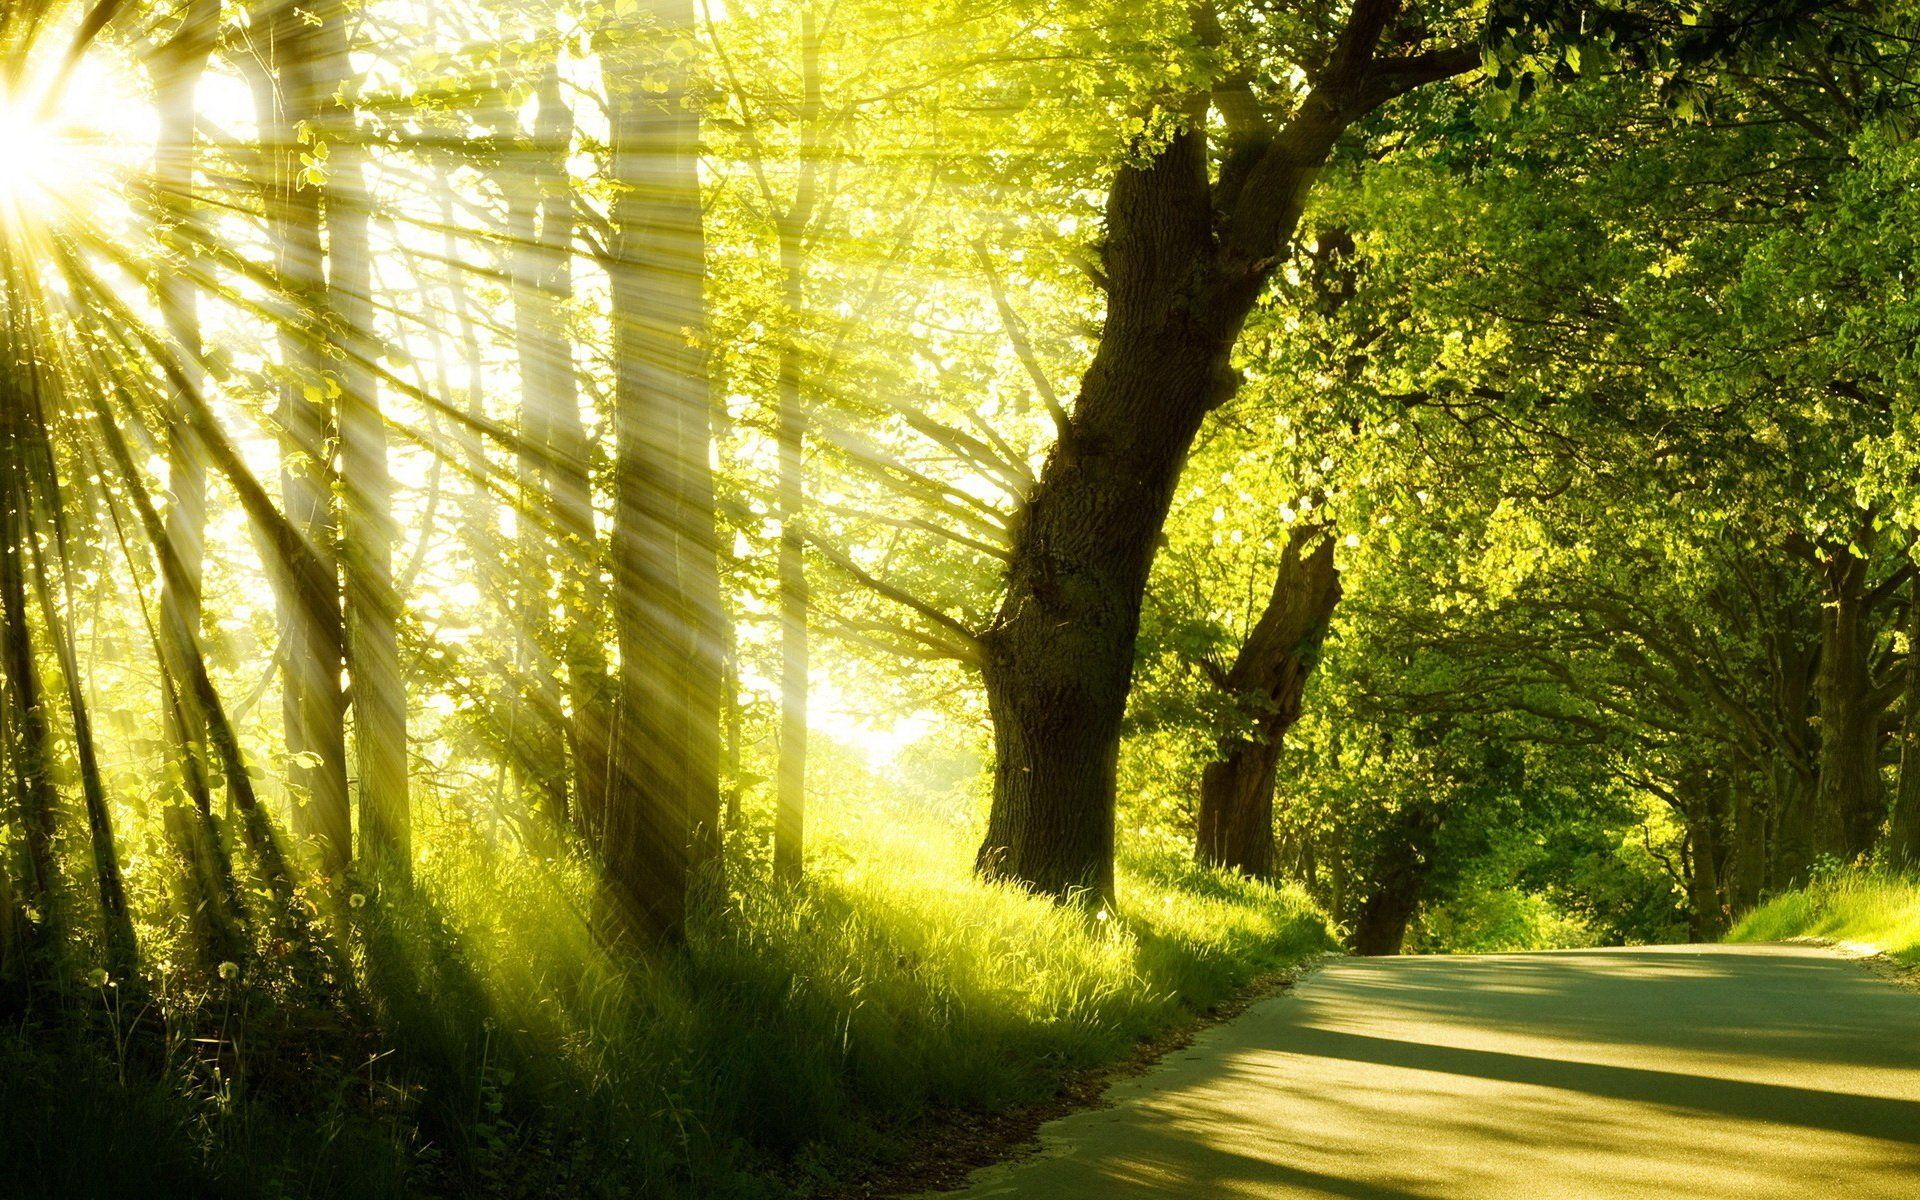 summer park road tree grass morning sunrise fog sun rays hd